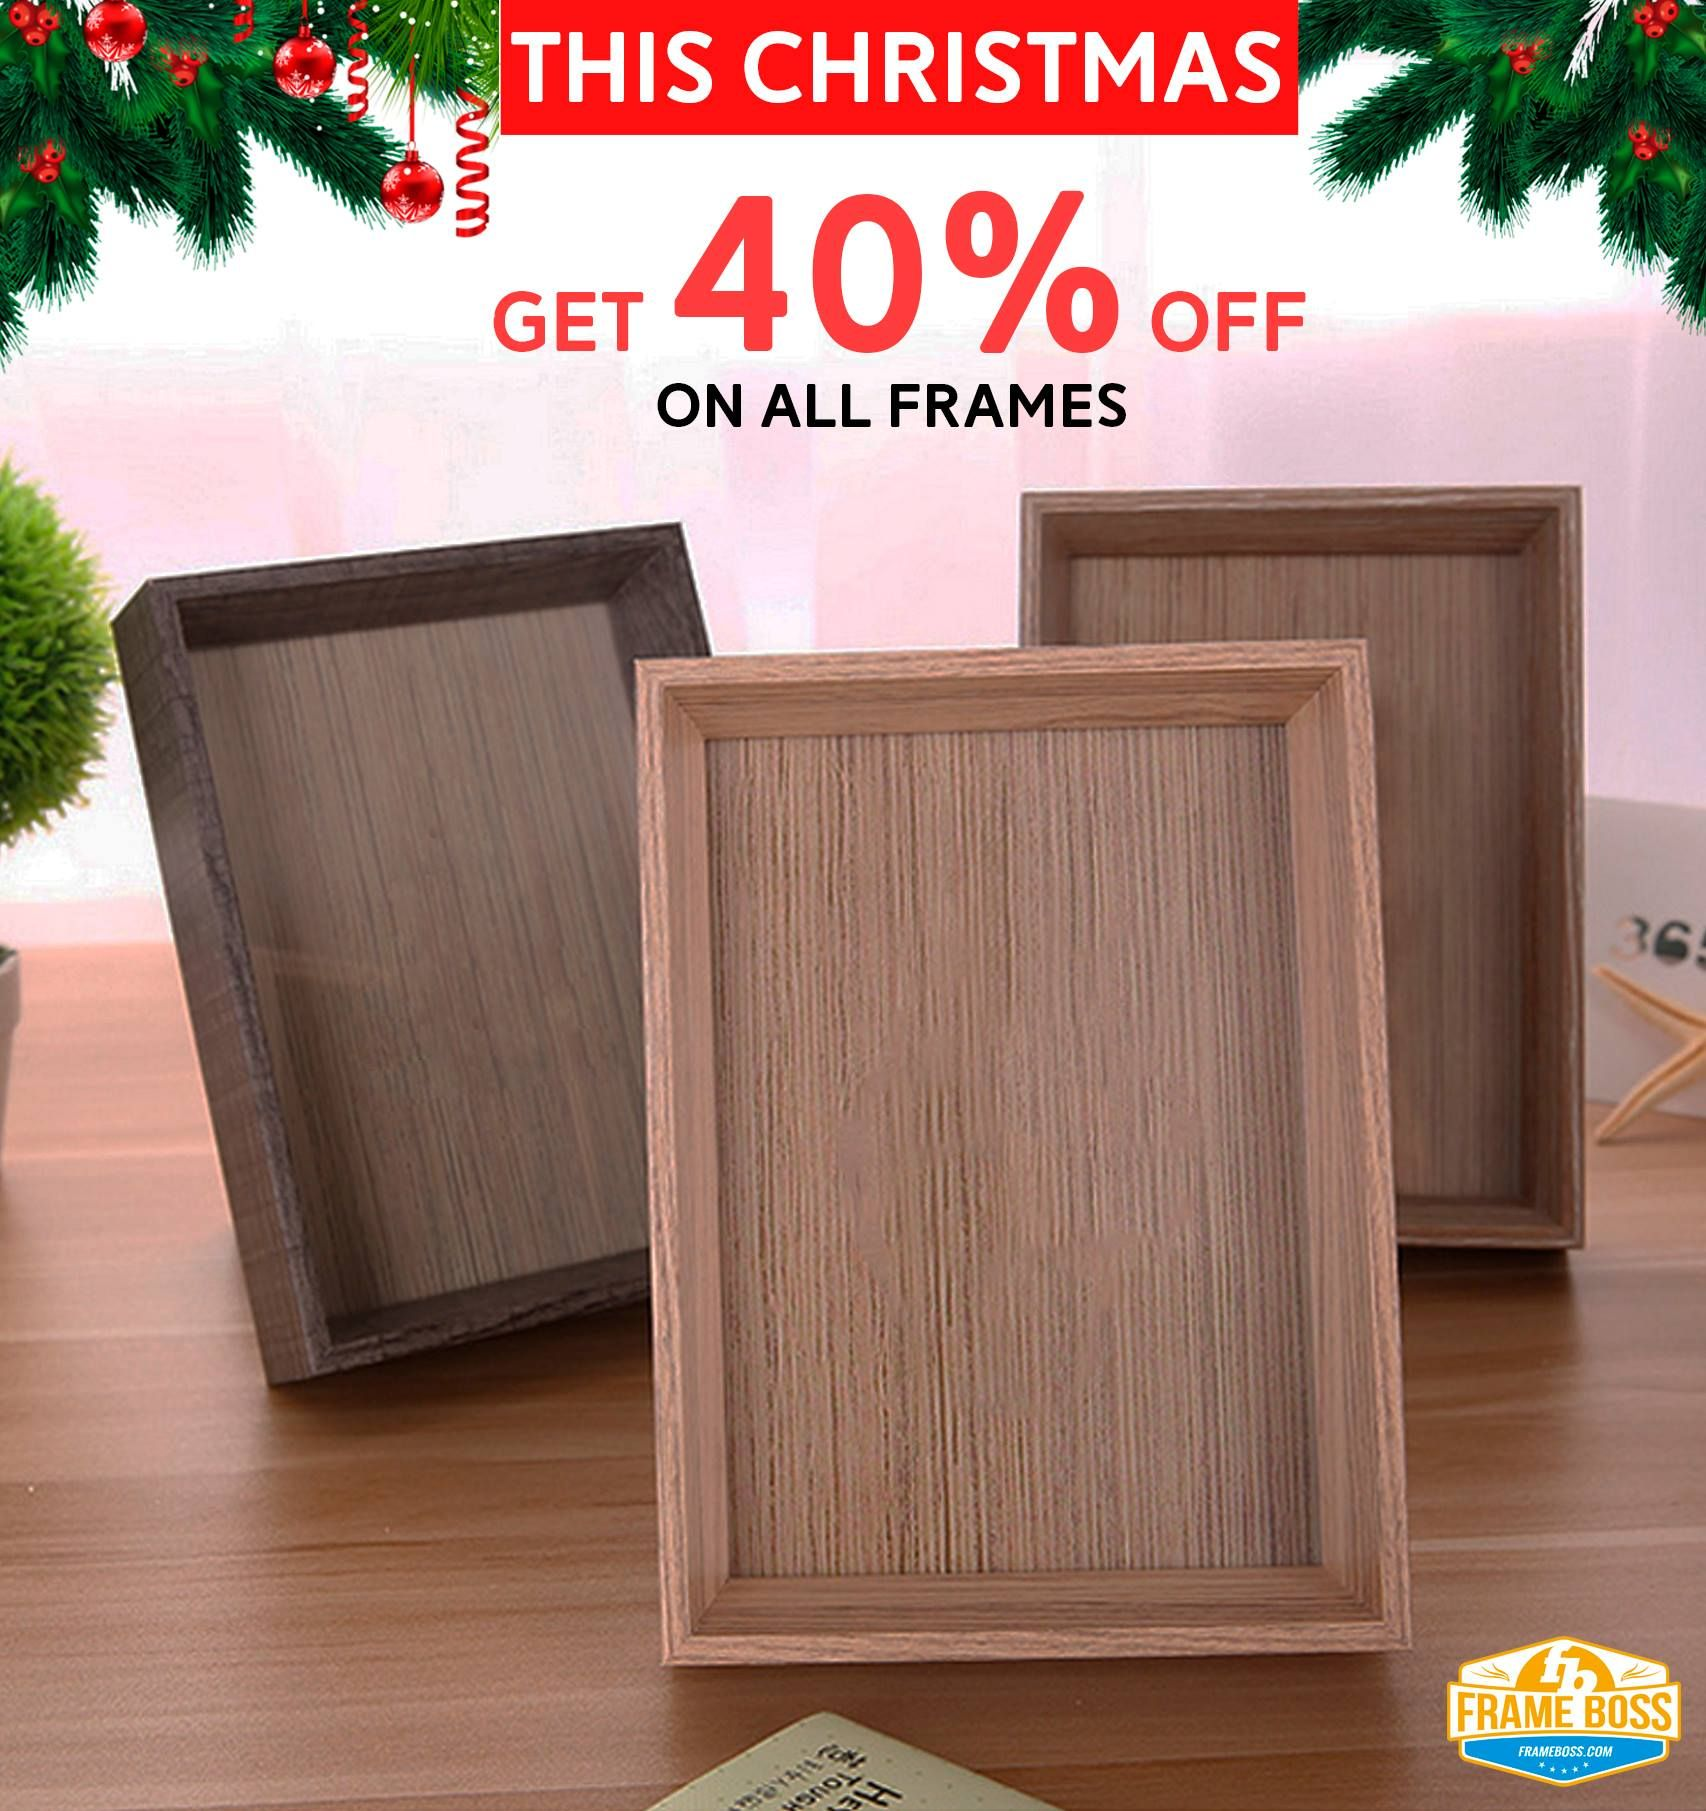 This Christmas! Avail Huge 40% Discount on all frames, Get your ...